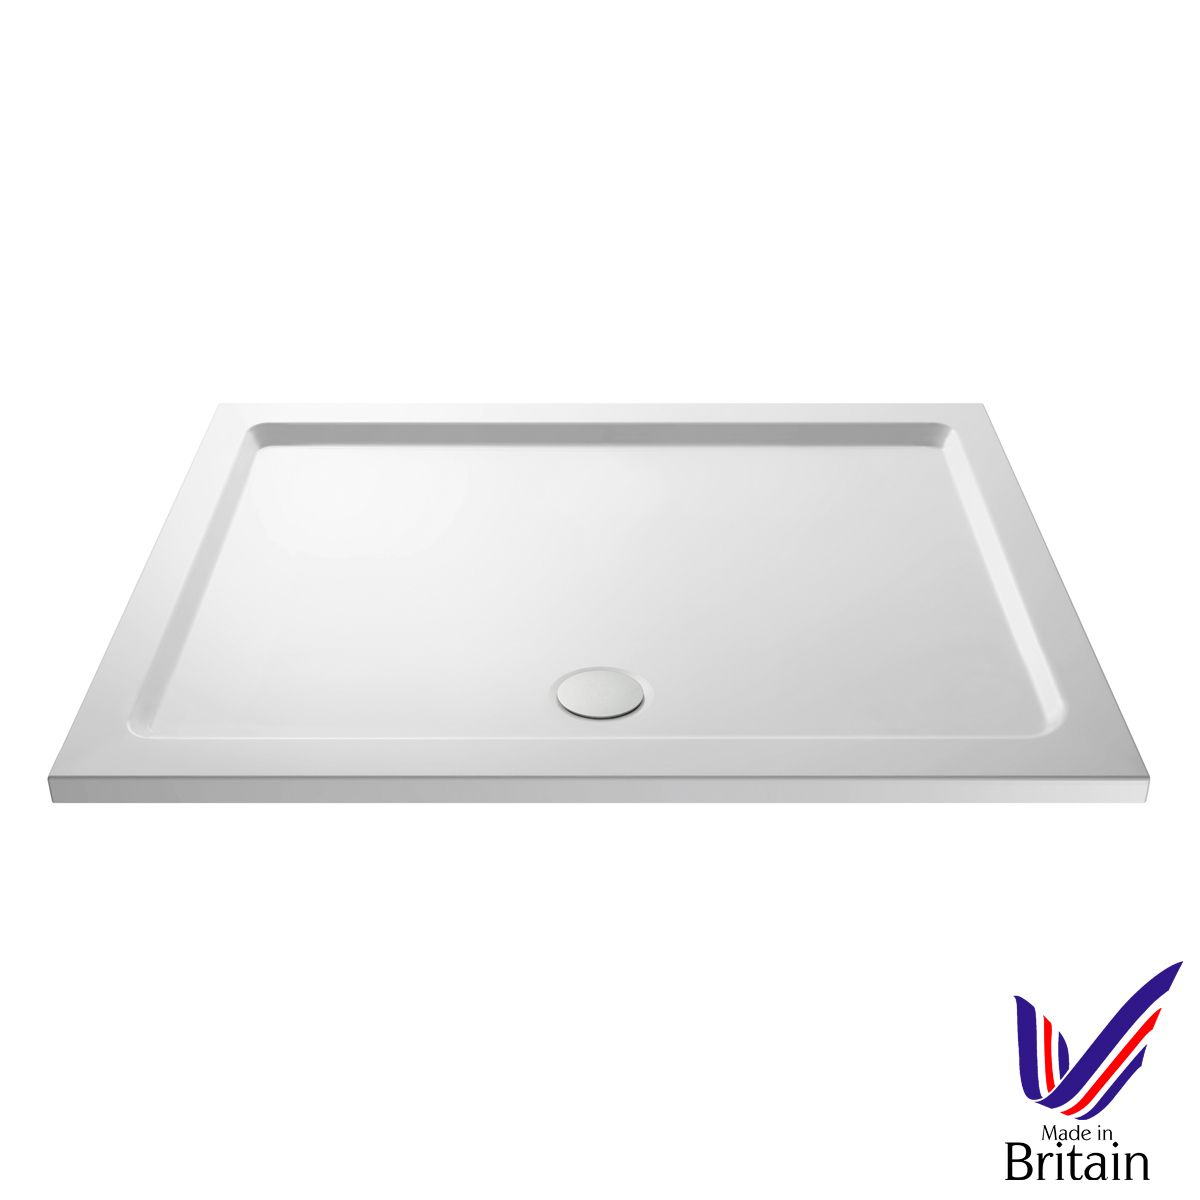 1600 x 700 Shower Tray Rectangular Low Profile by Pearlstone